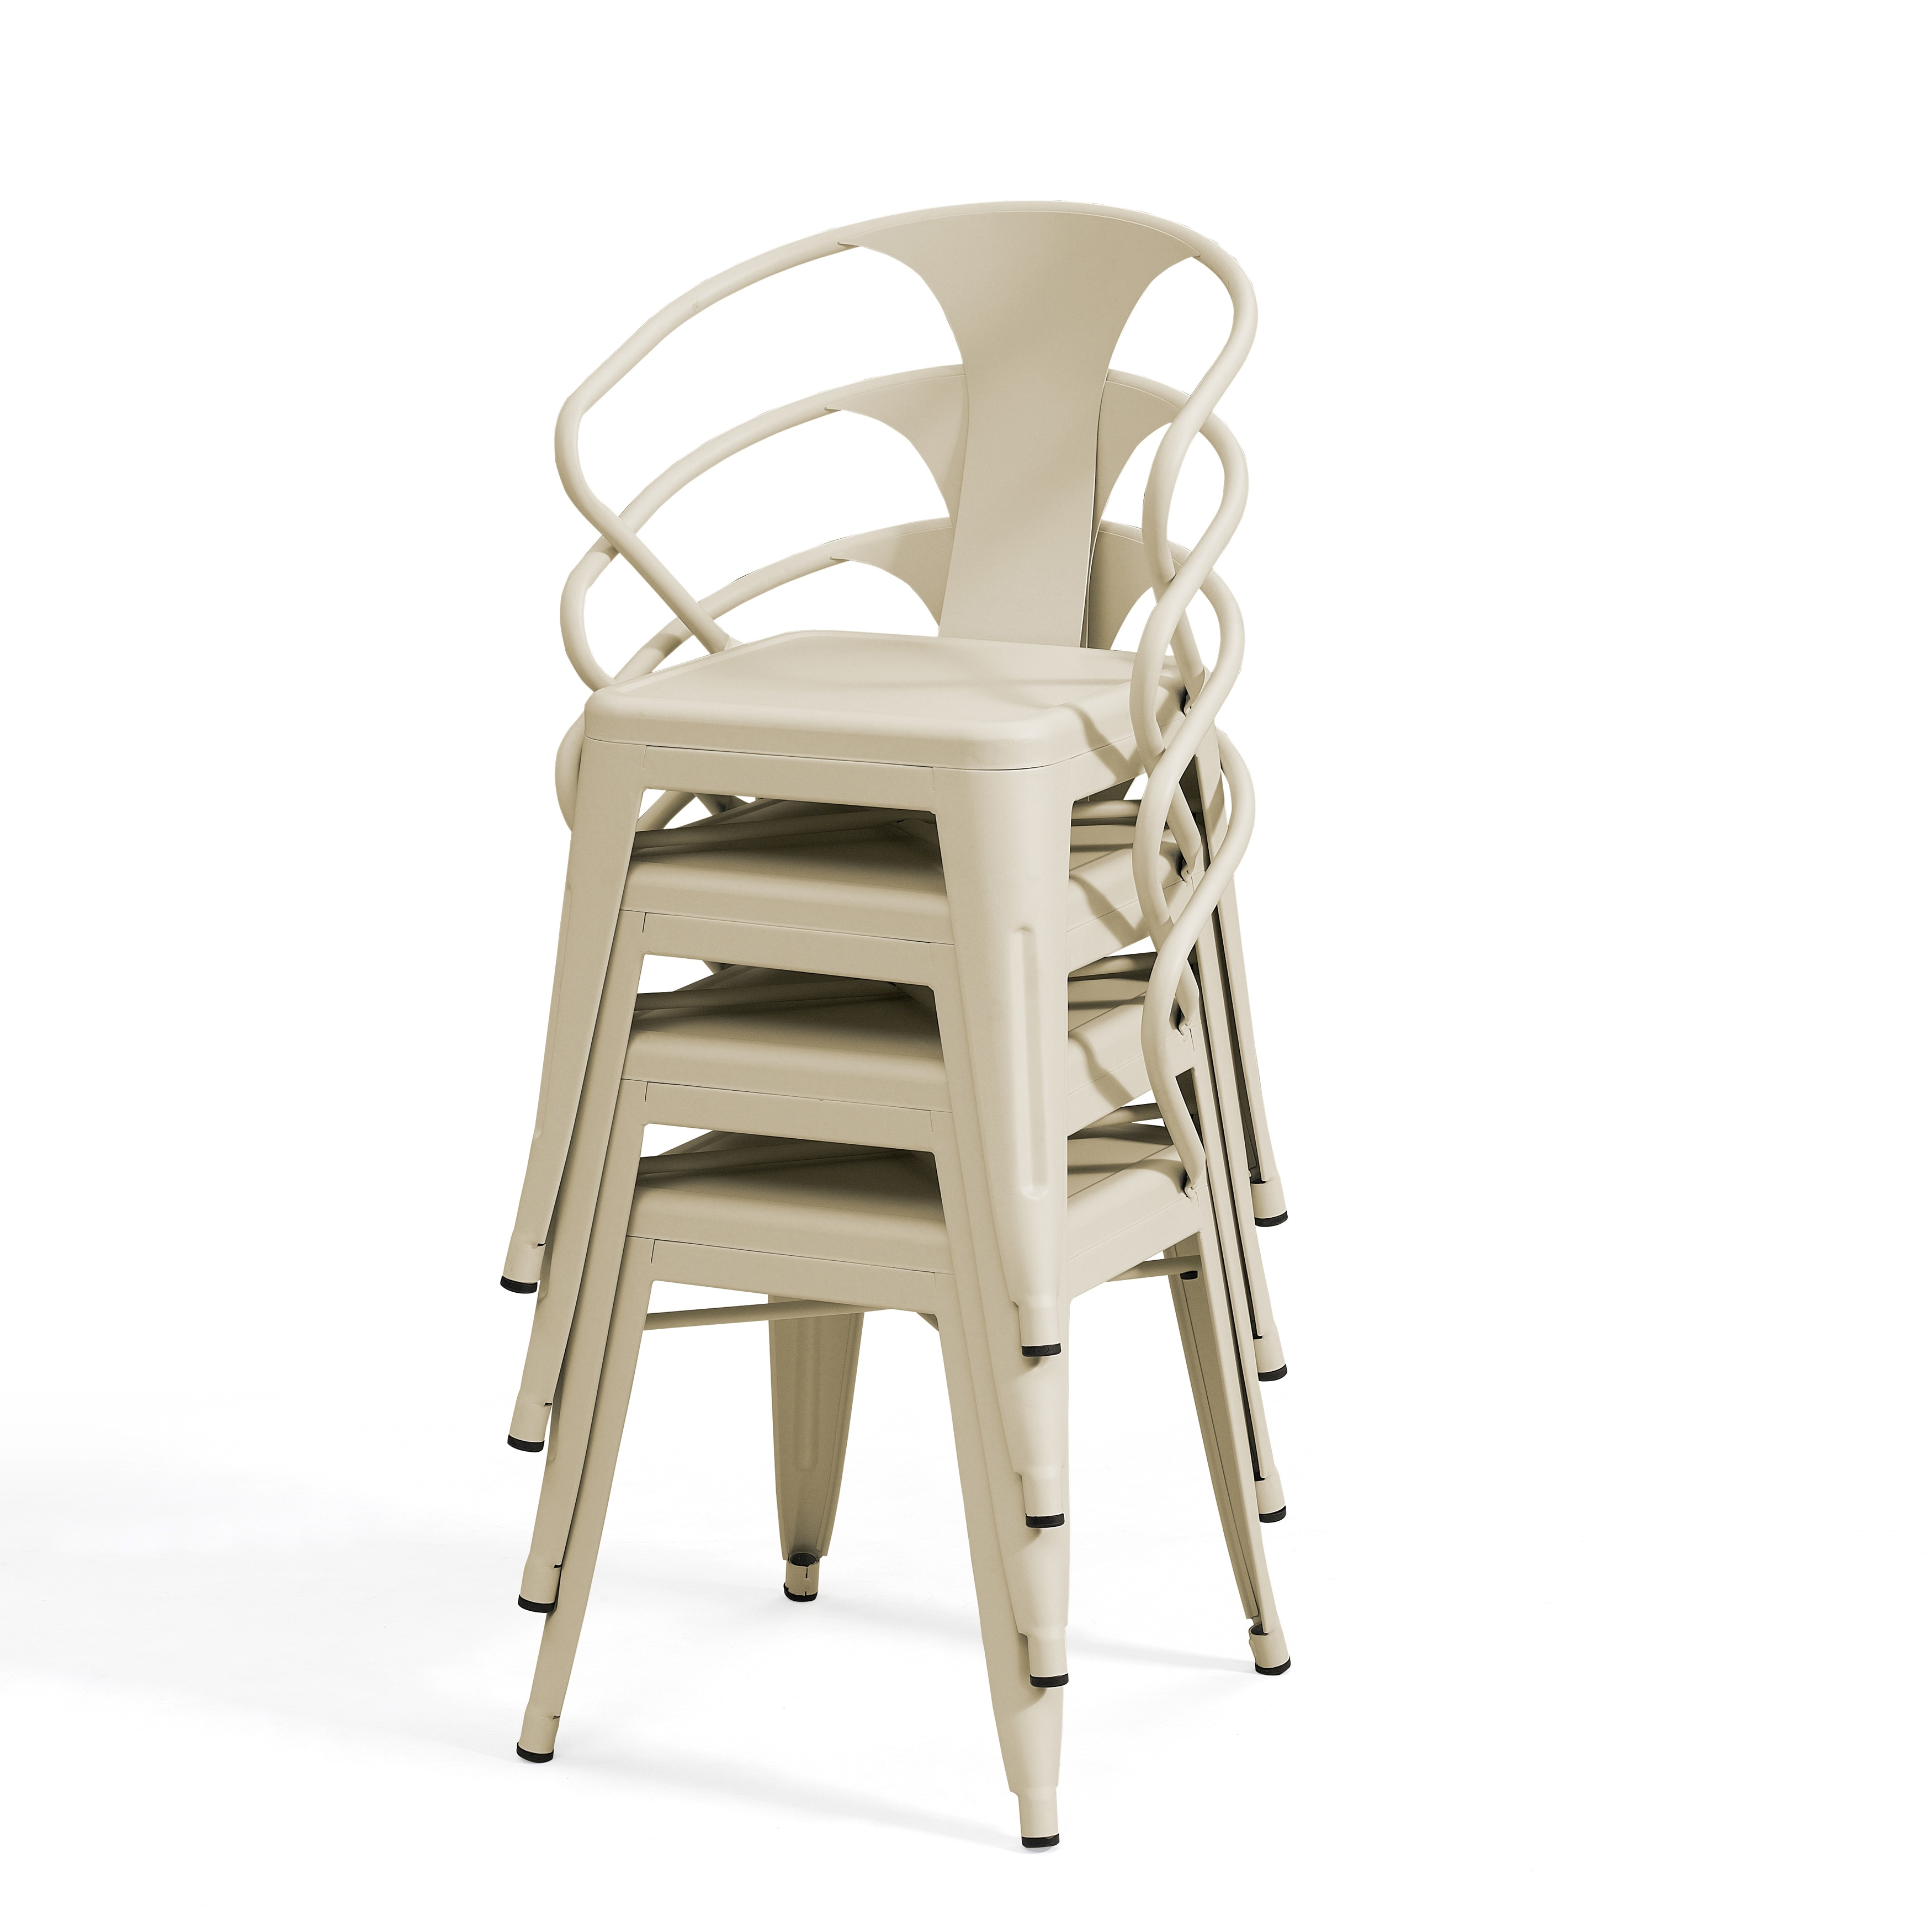 metal stacking chairs outdoor green universal chair covers shop tabouret cream set of 4 free shipping today overstock com 13134603